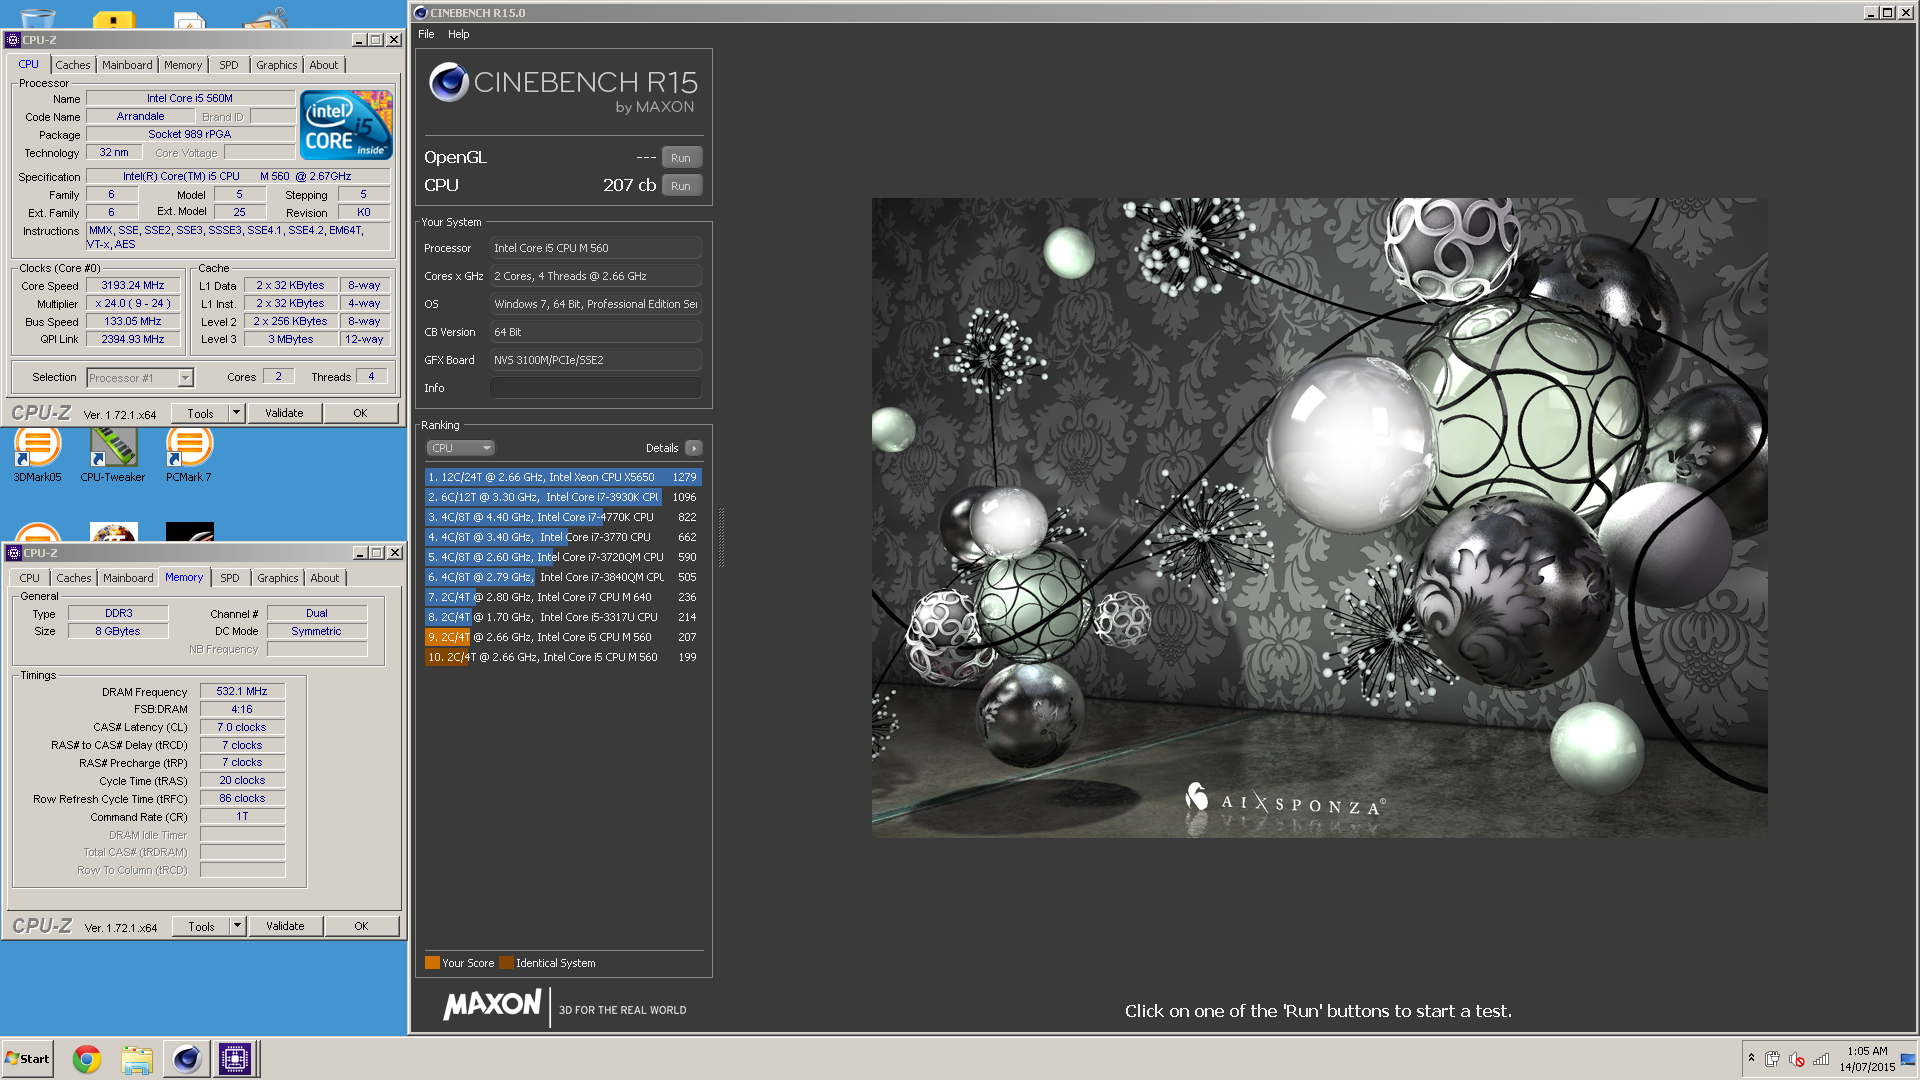 Whatsmenames cinebench r15 score 207 cb with a core i5 560m publicscrutiny Image collections